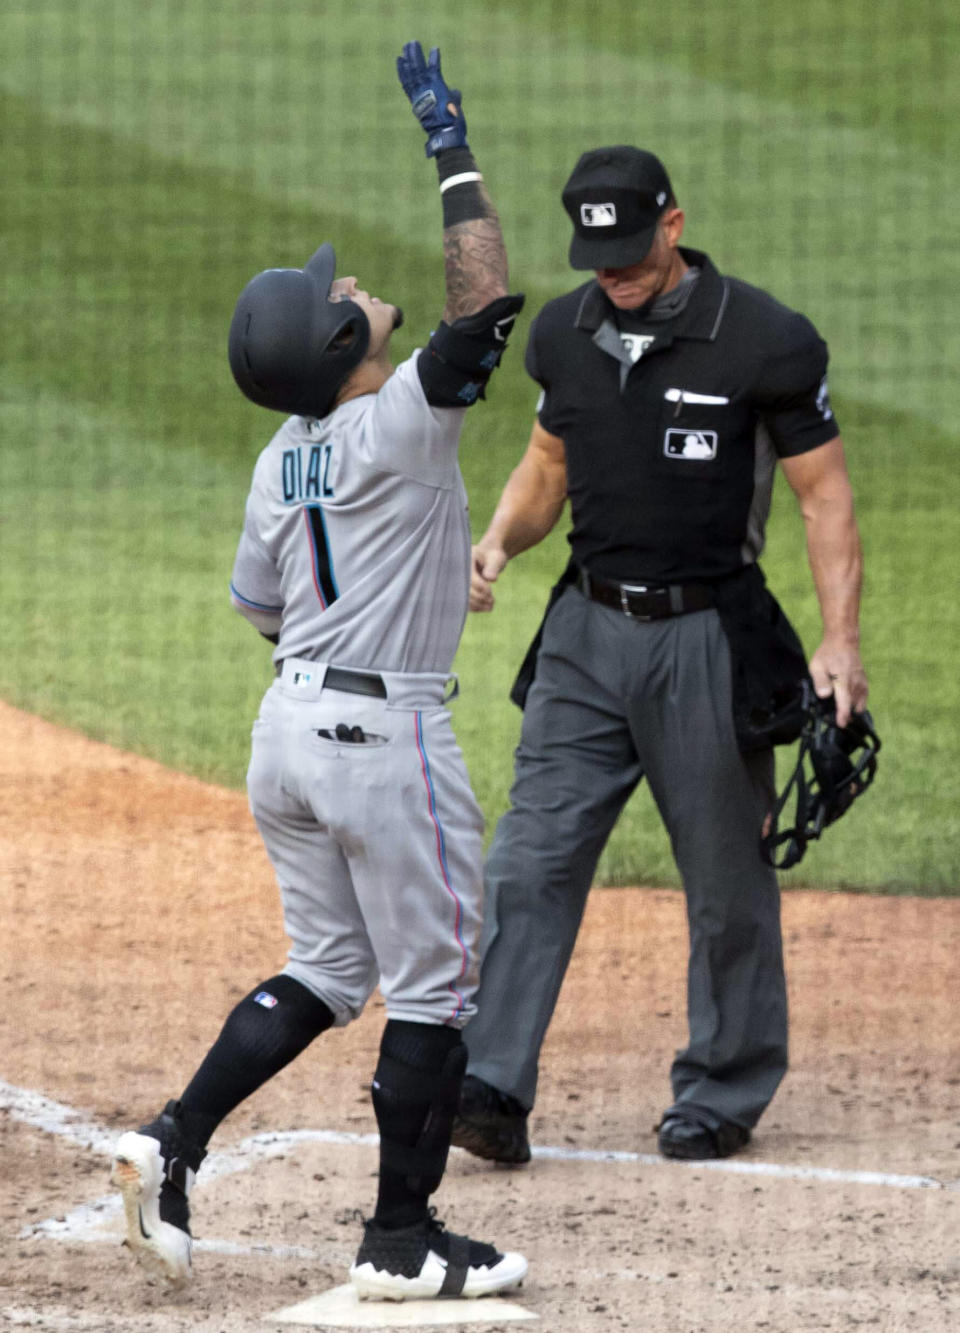 Miami Marlins' Isan Diaz, left, reacts as he comes into home plate after hitting a home run in his major league debut during the sixth inning of a baseball game against the New York Mets, Monday, Aug. 5, 2019, in New York. (AP Photo/Mary Altaffer)